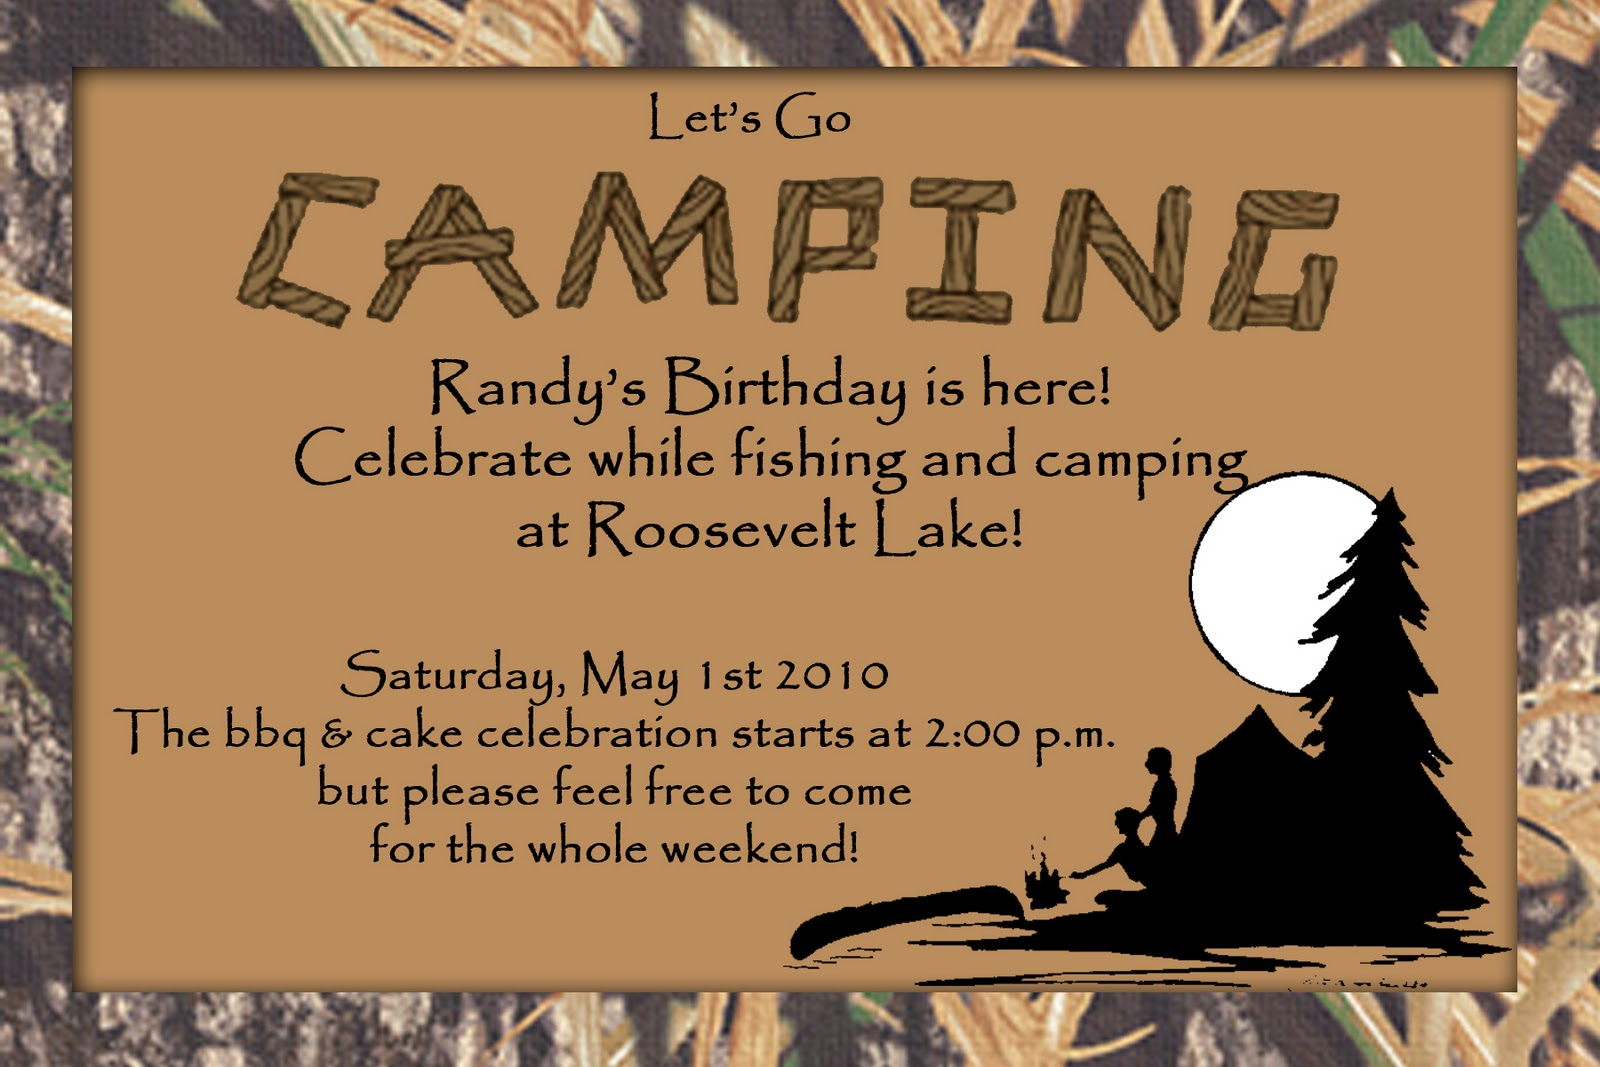 Camping invites for birthdays gallery invitation templates free hunt 4 announcements and invites camo camping birthday invite camo camping birthday invite filmwisefo filmwisefo